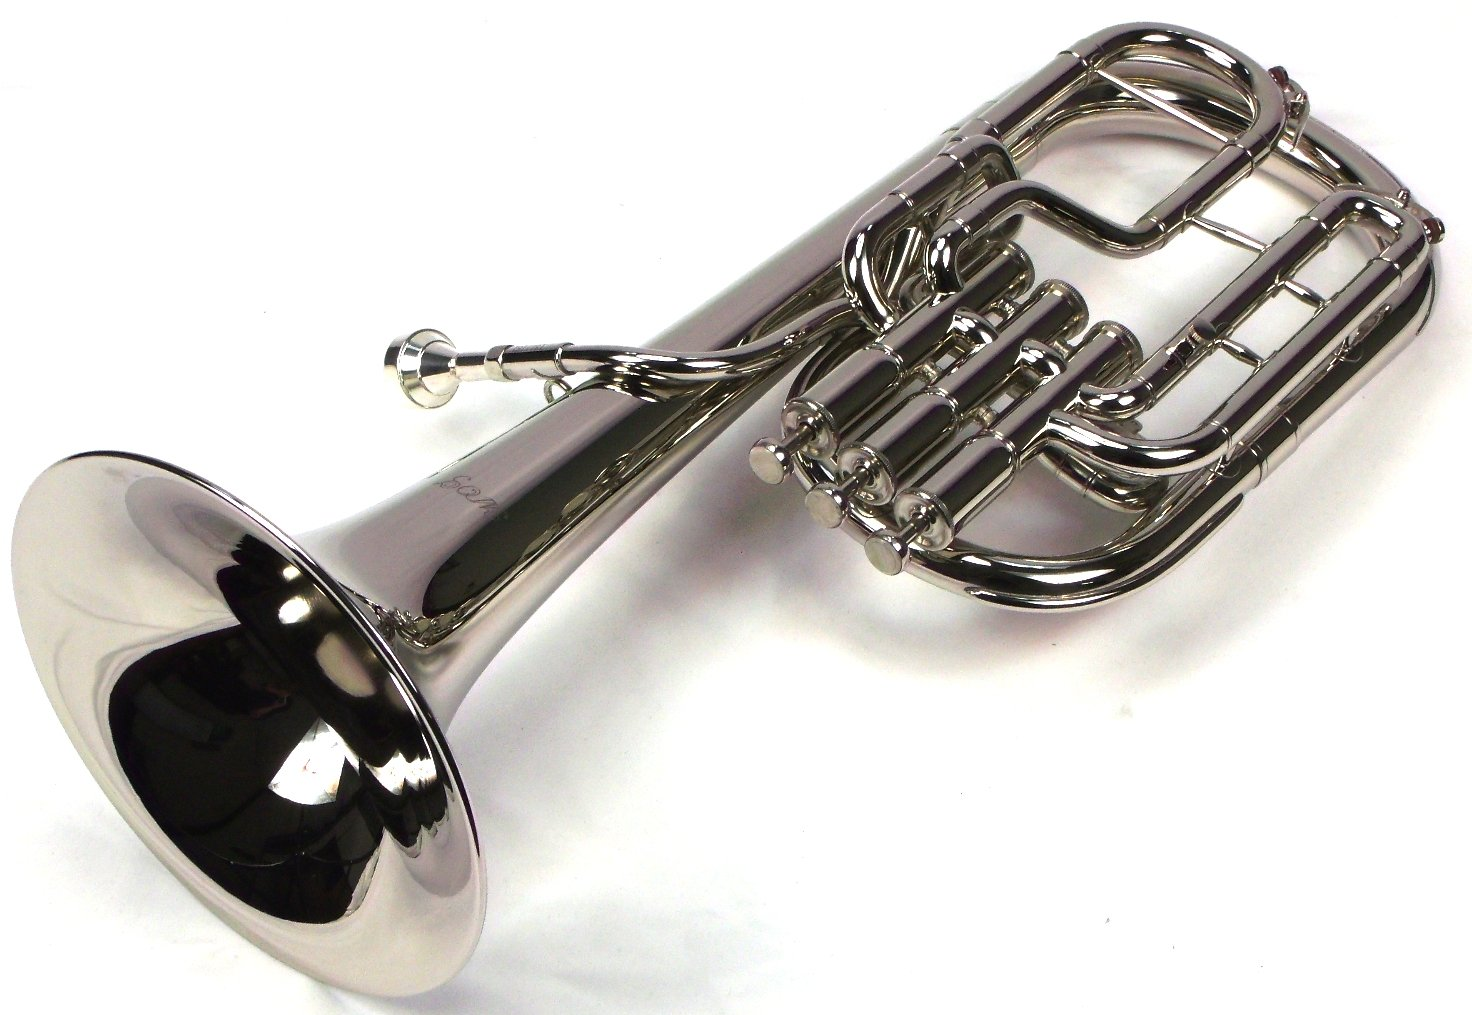 Intermediate Monel Pistons Alto Horn w/Case & Mouthpiece-Nickel Plated Finish by Moz (Image #3)